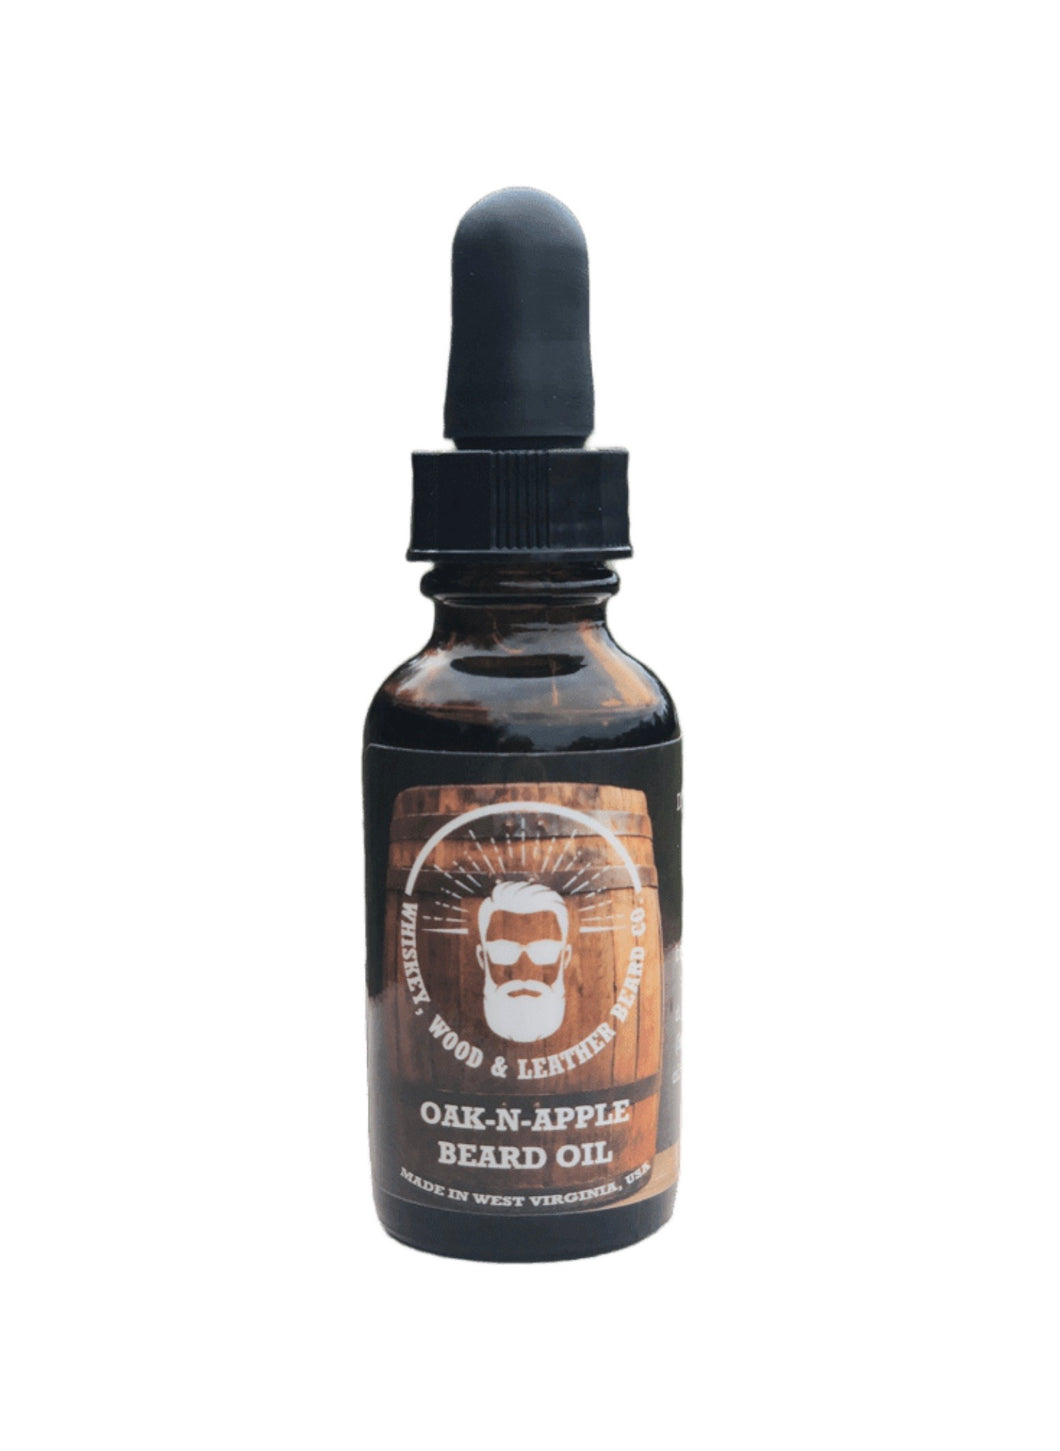 Oak-N-Apple Beard Oil